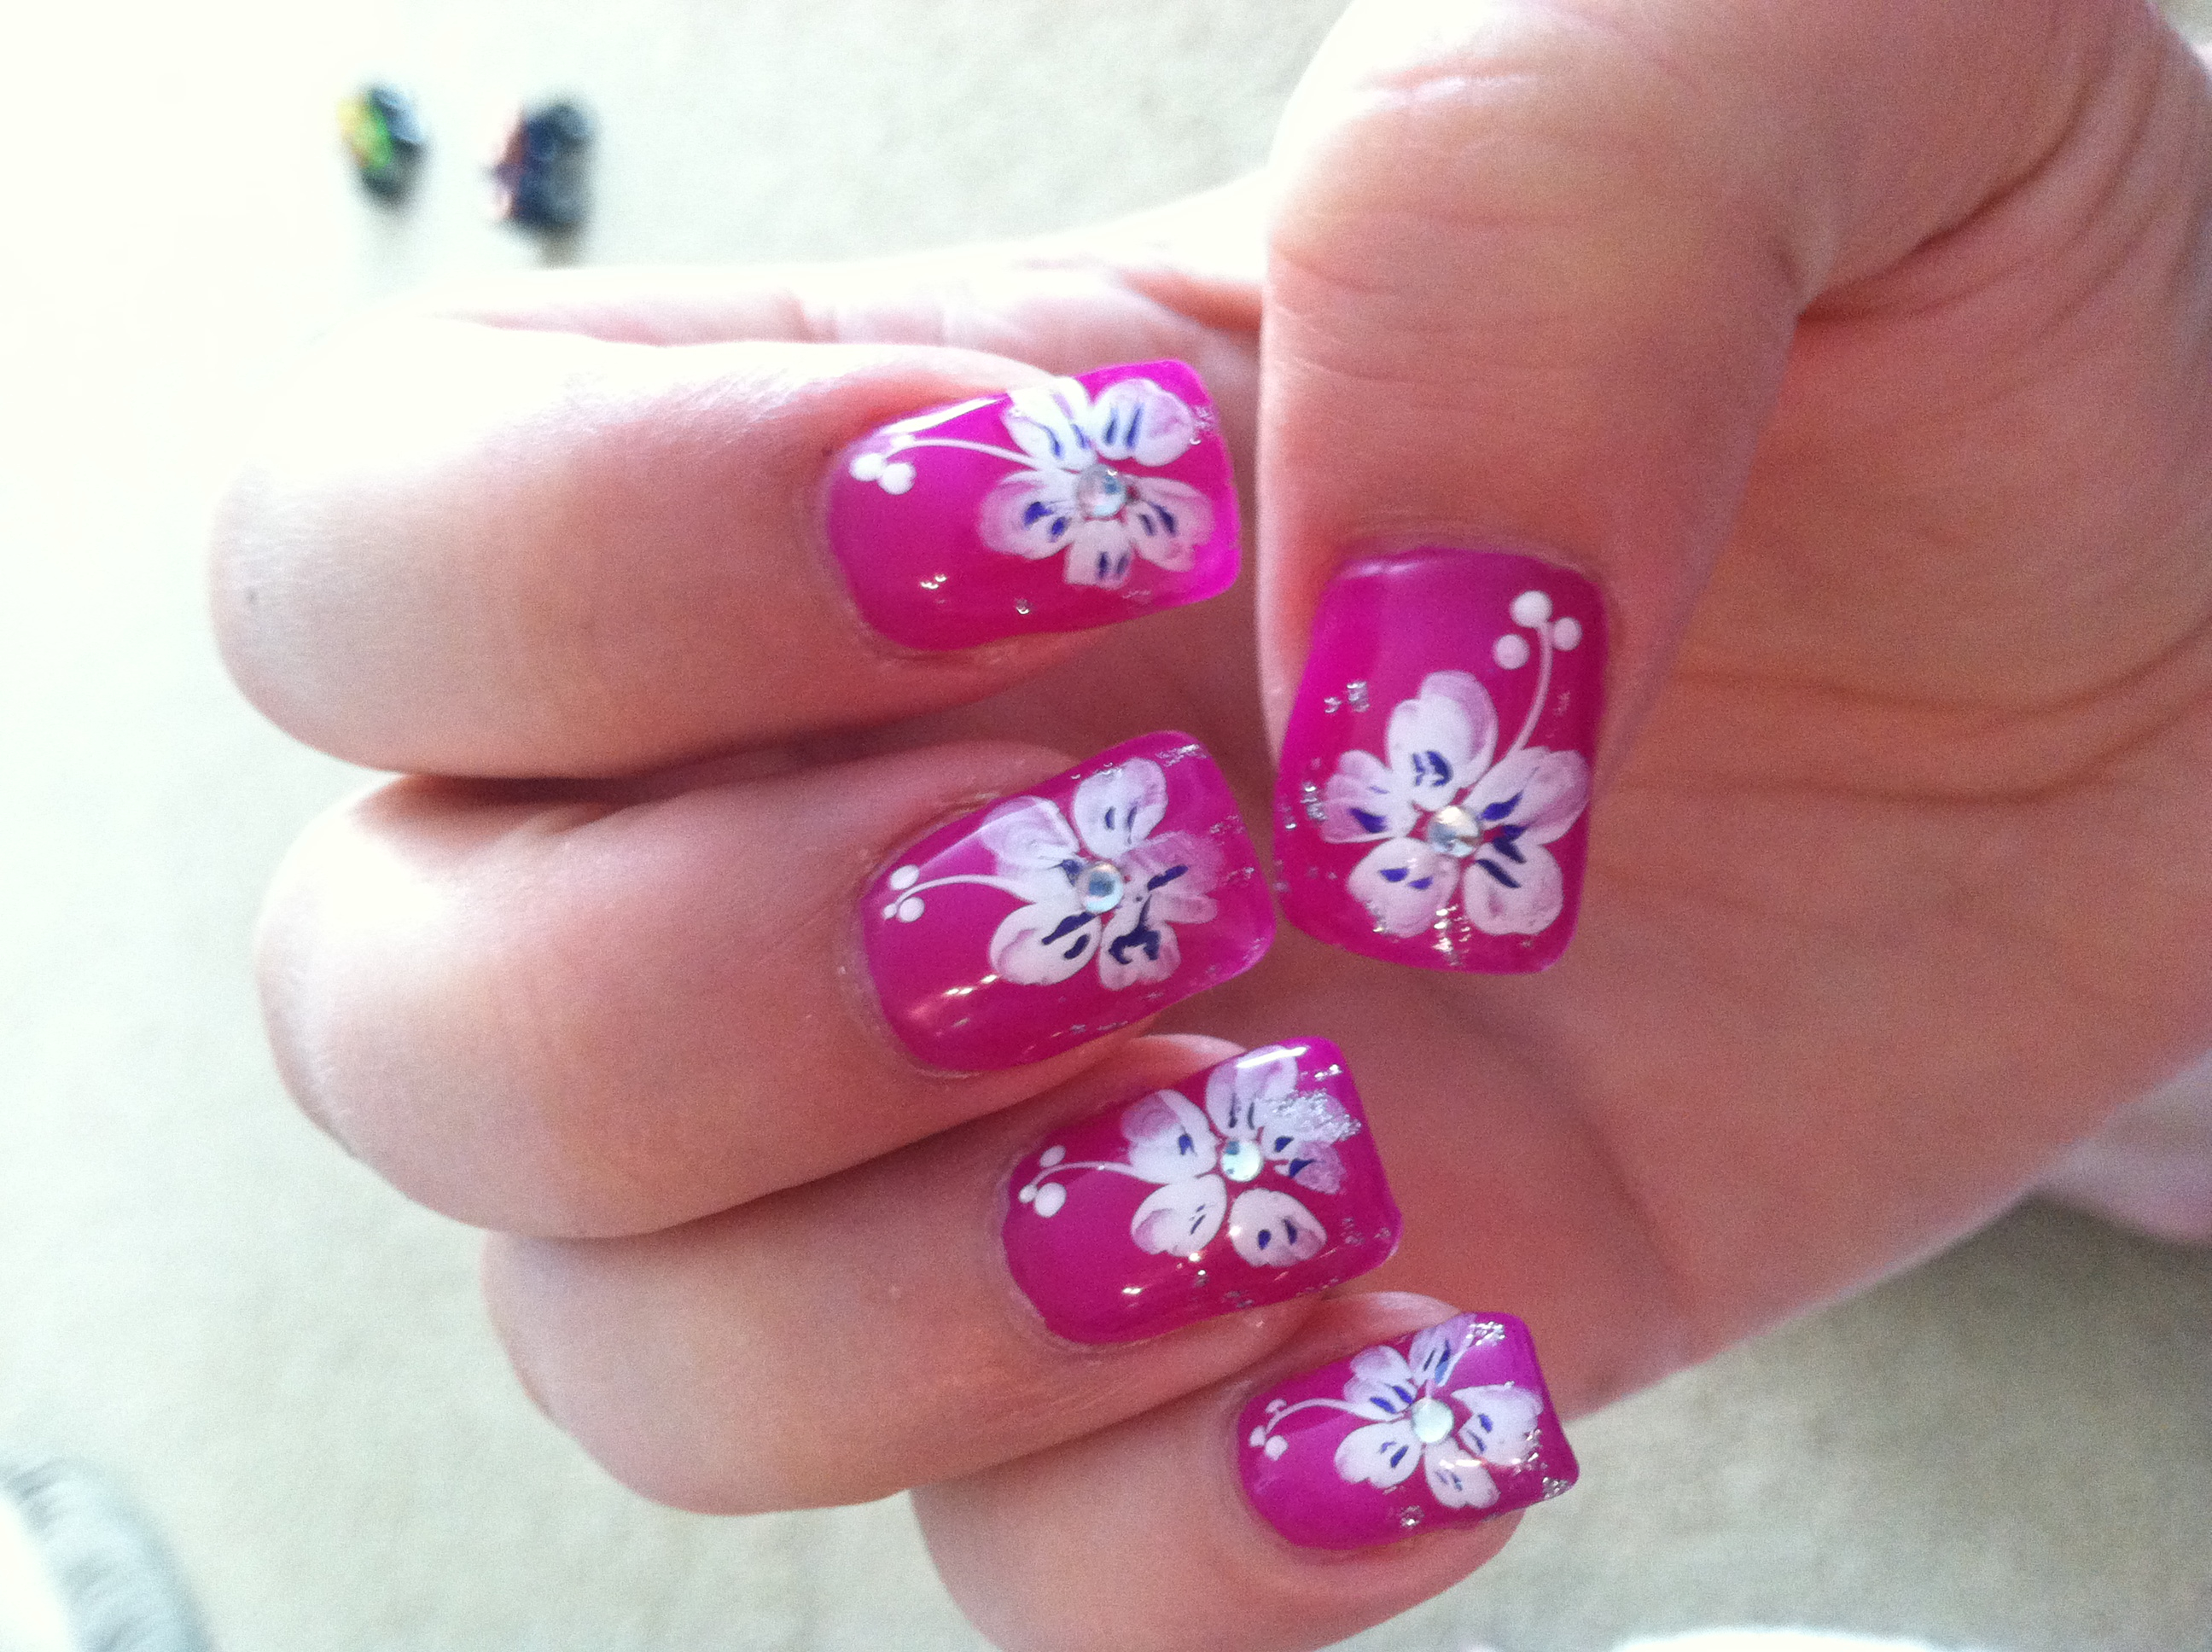 7 Tropical Flower Nail Designs Images - Tropical Flower ...